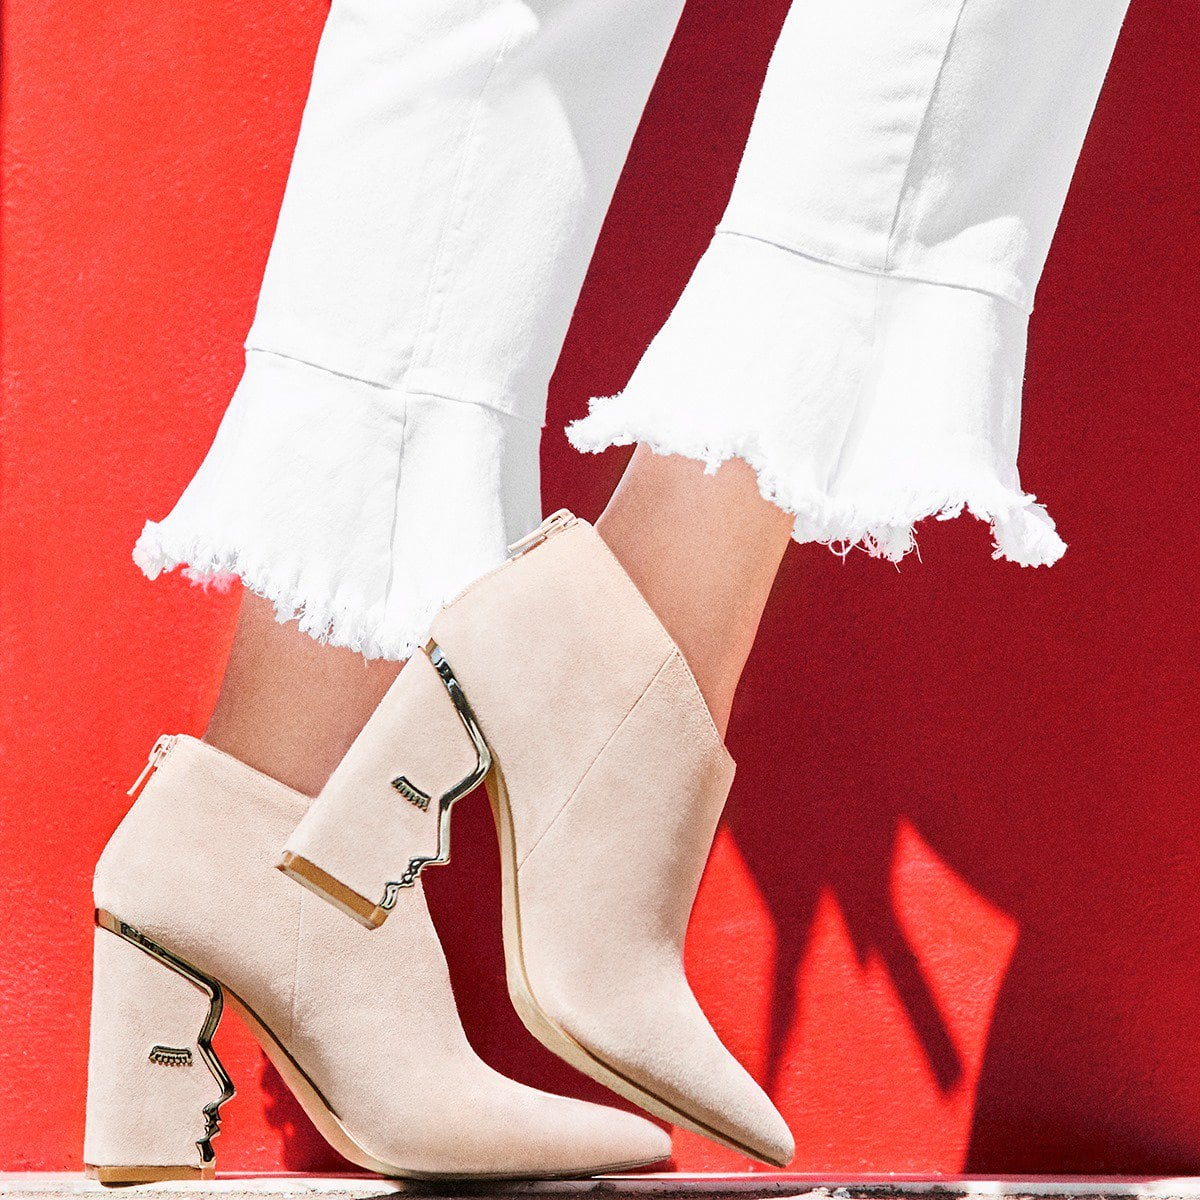 Choose the right silhouette for your ensemble with the Katy Perry Gypsy booties